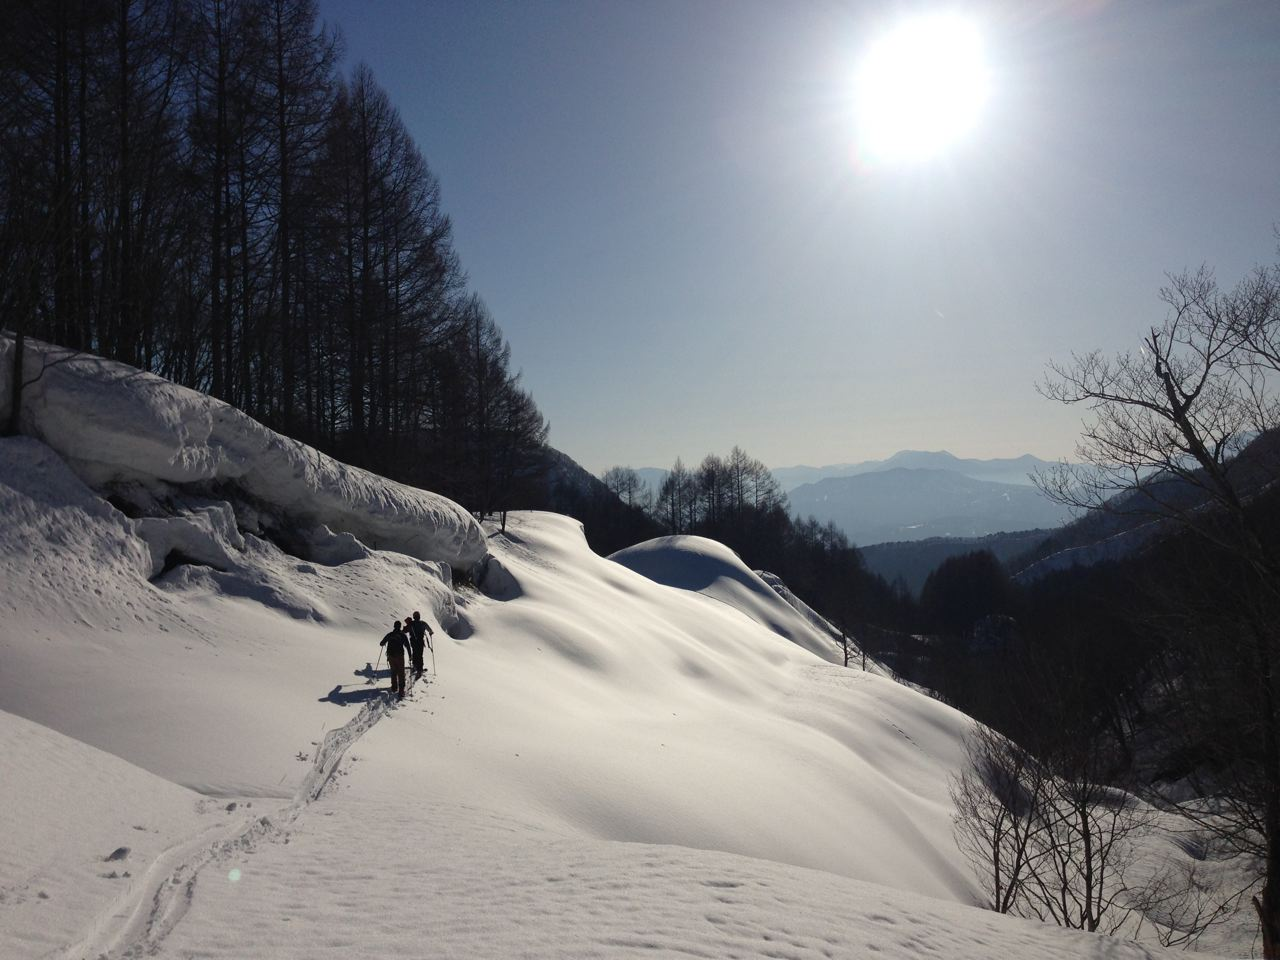 April a great time of the year to do some ski touring in Nozawa Onsen